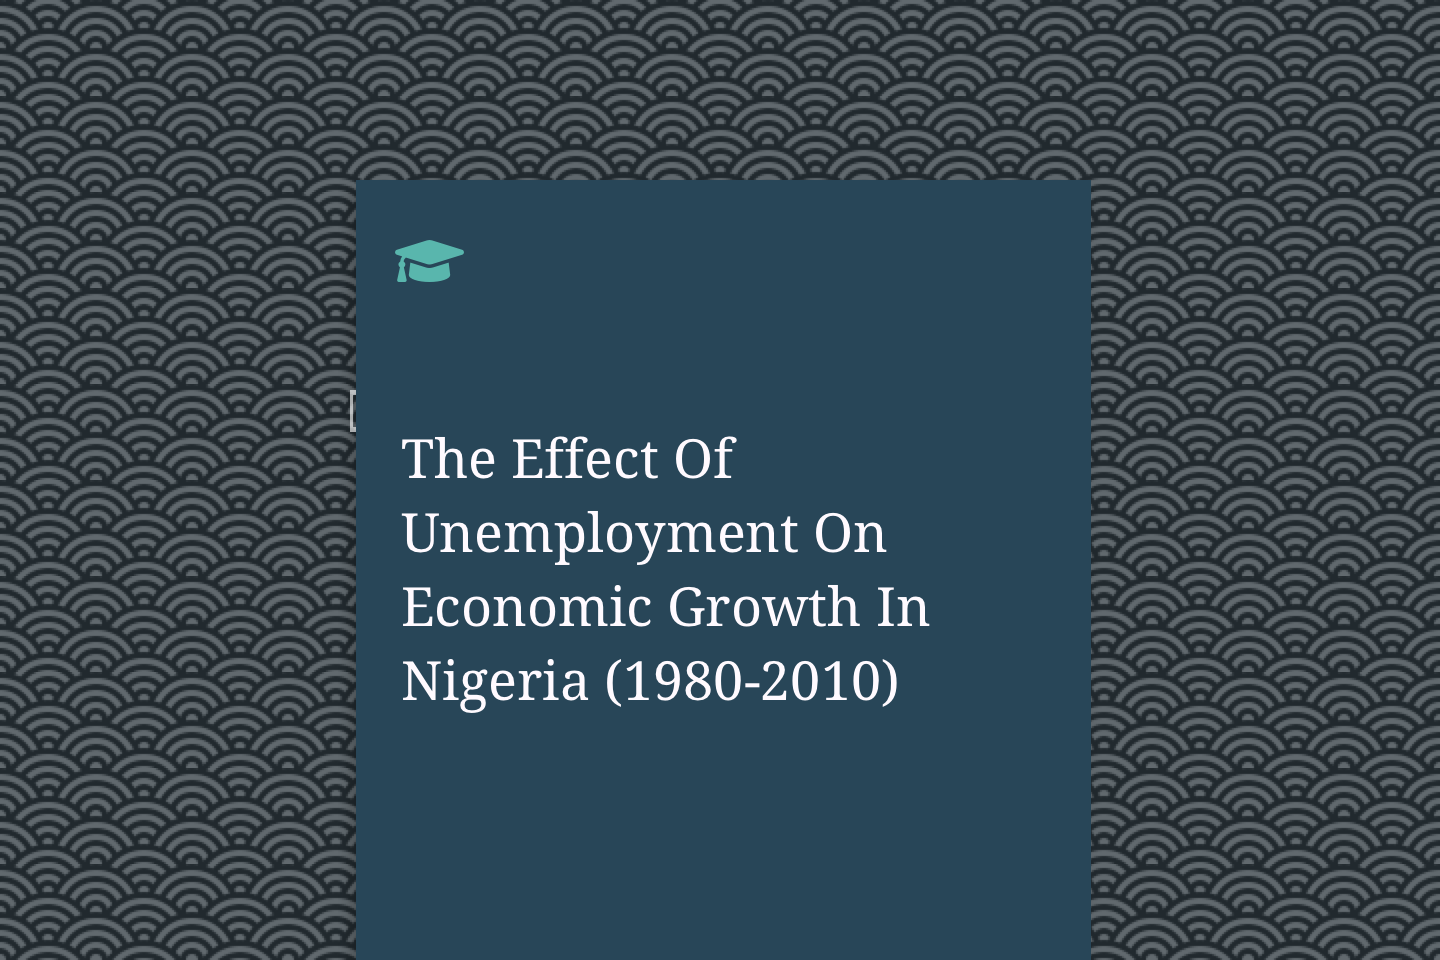 The Effect Of Unemployment On Economic Growth In Nigeria (1980-2010)